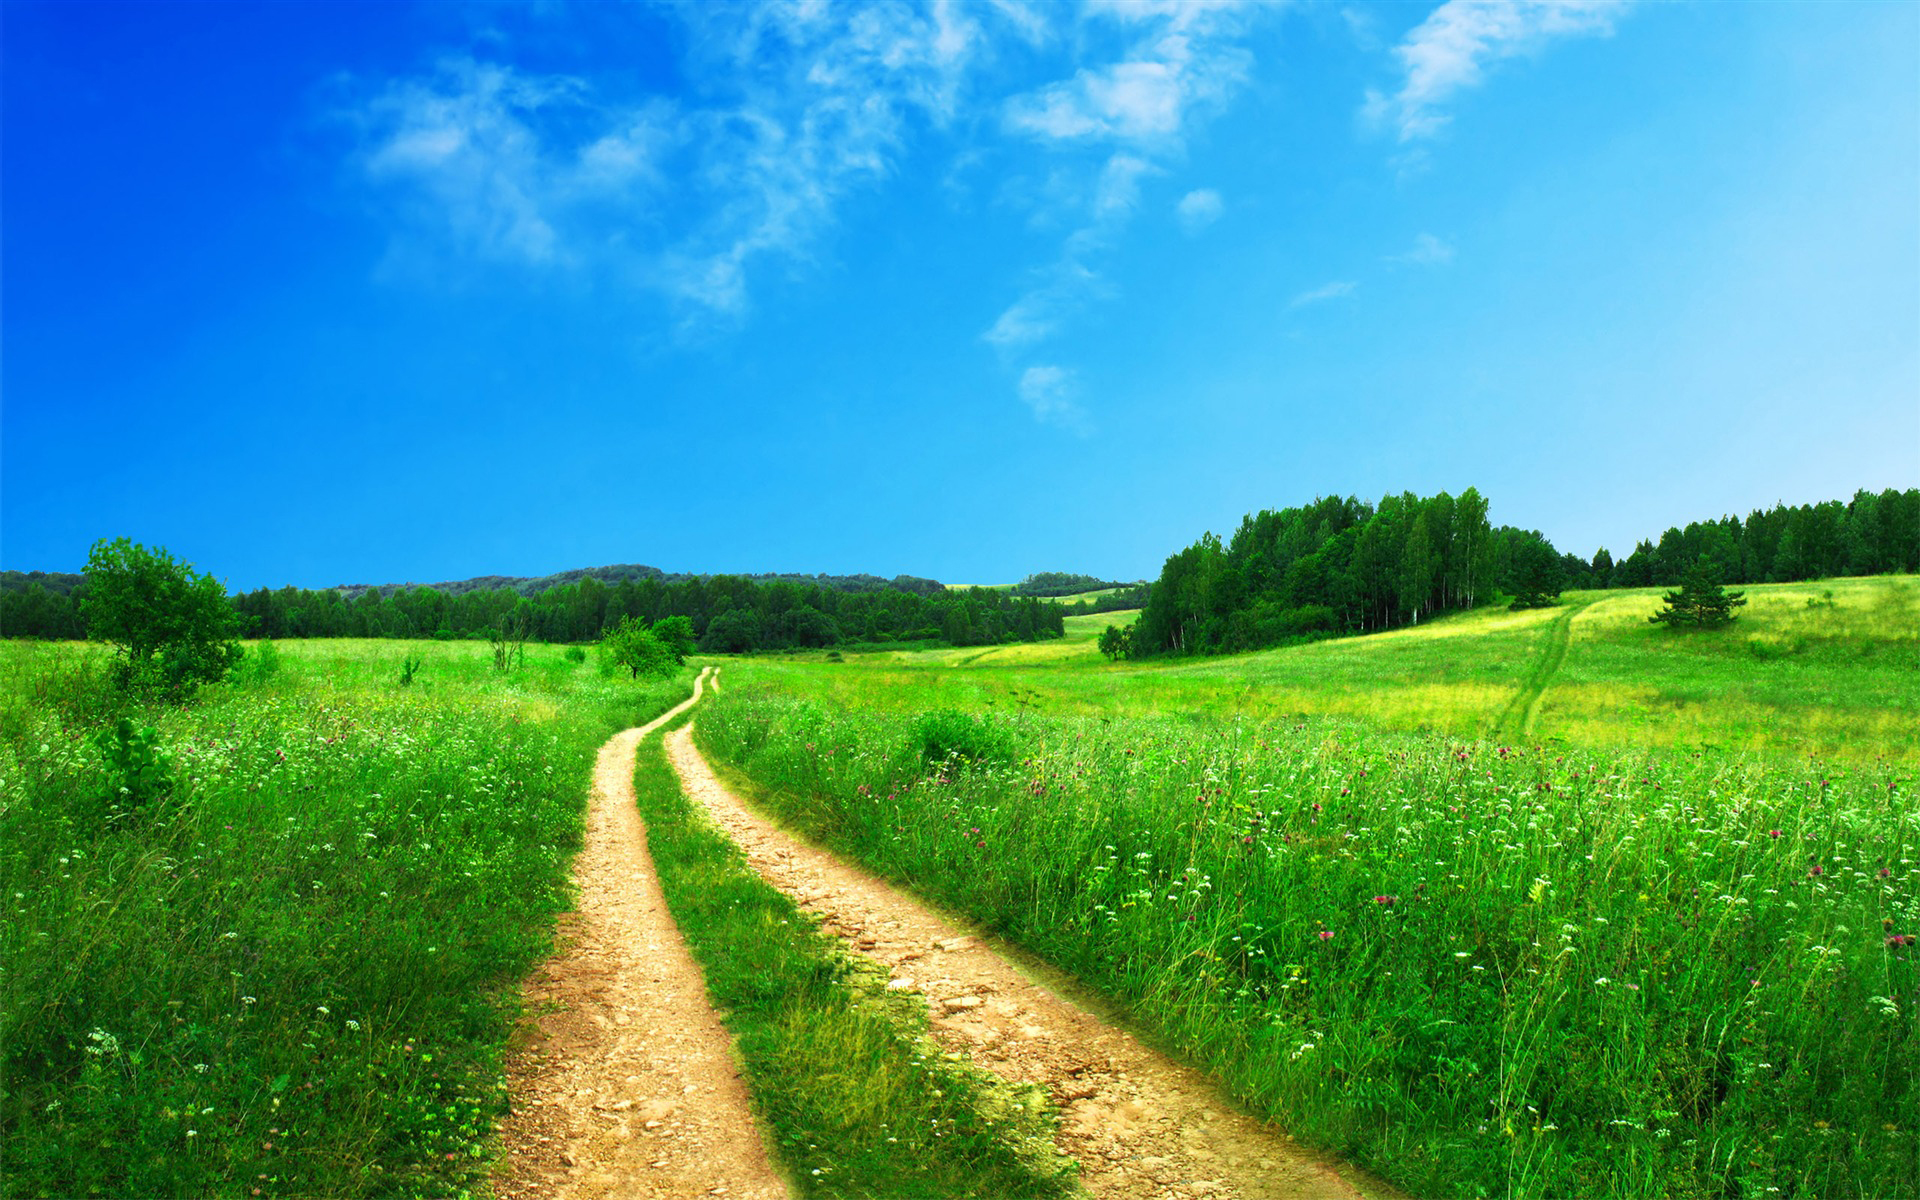 Path clipart dirt path. Hd wallpaper background images